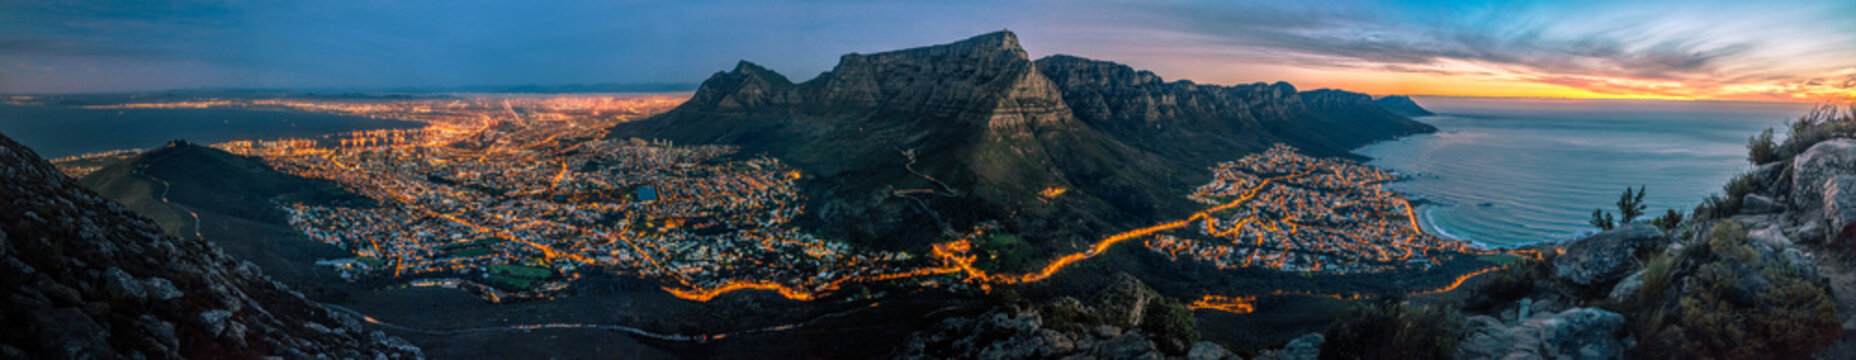 cape town at dusk